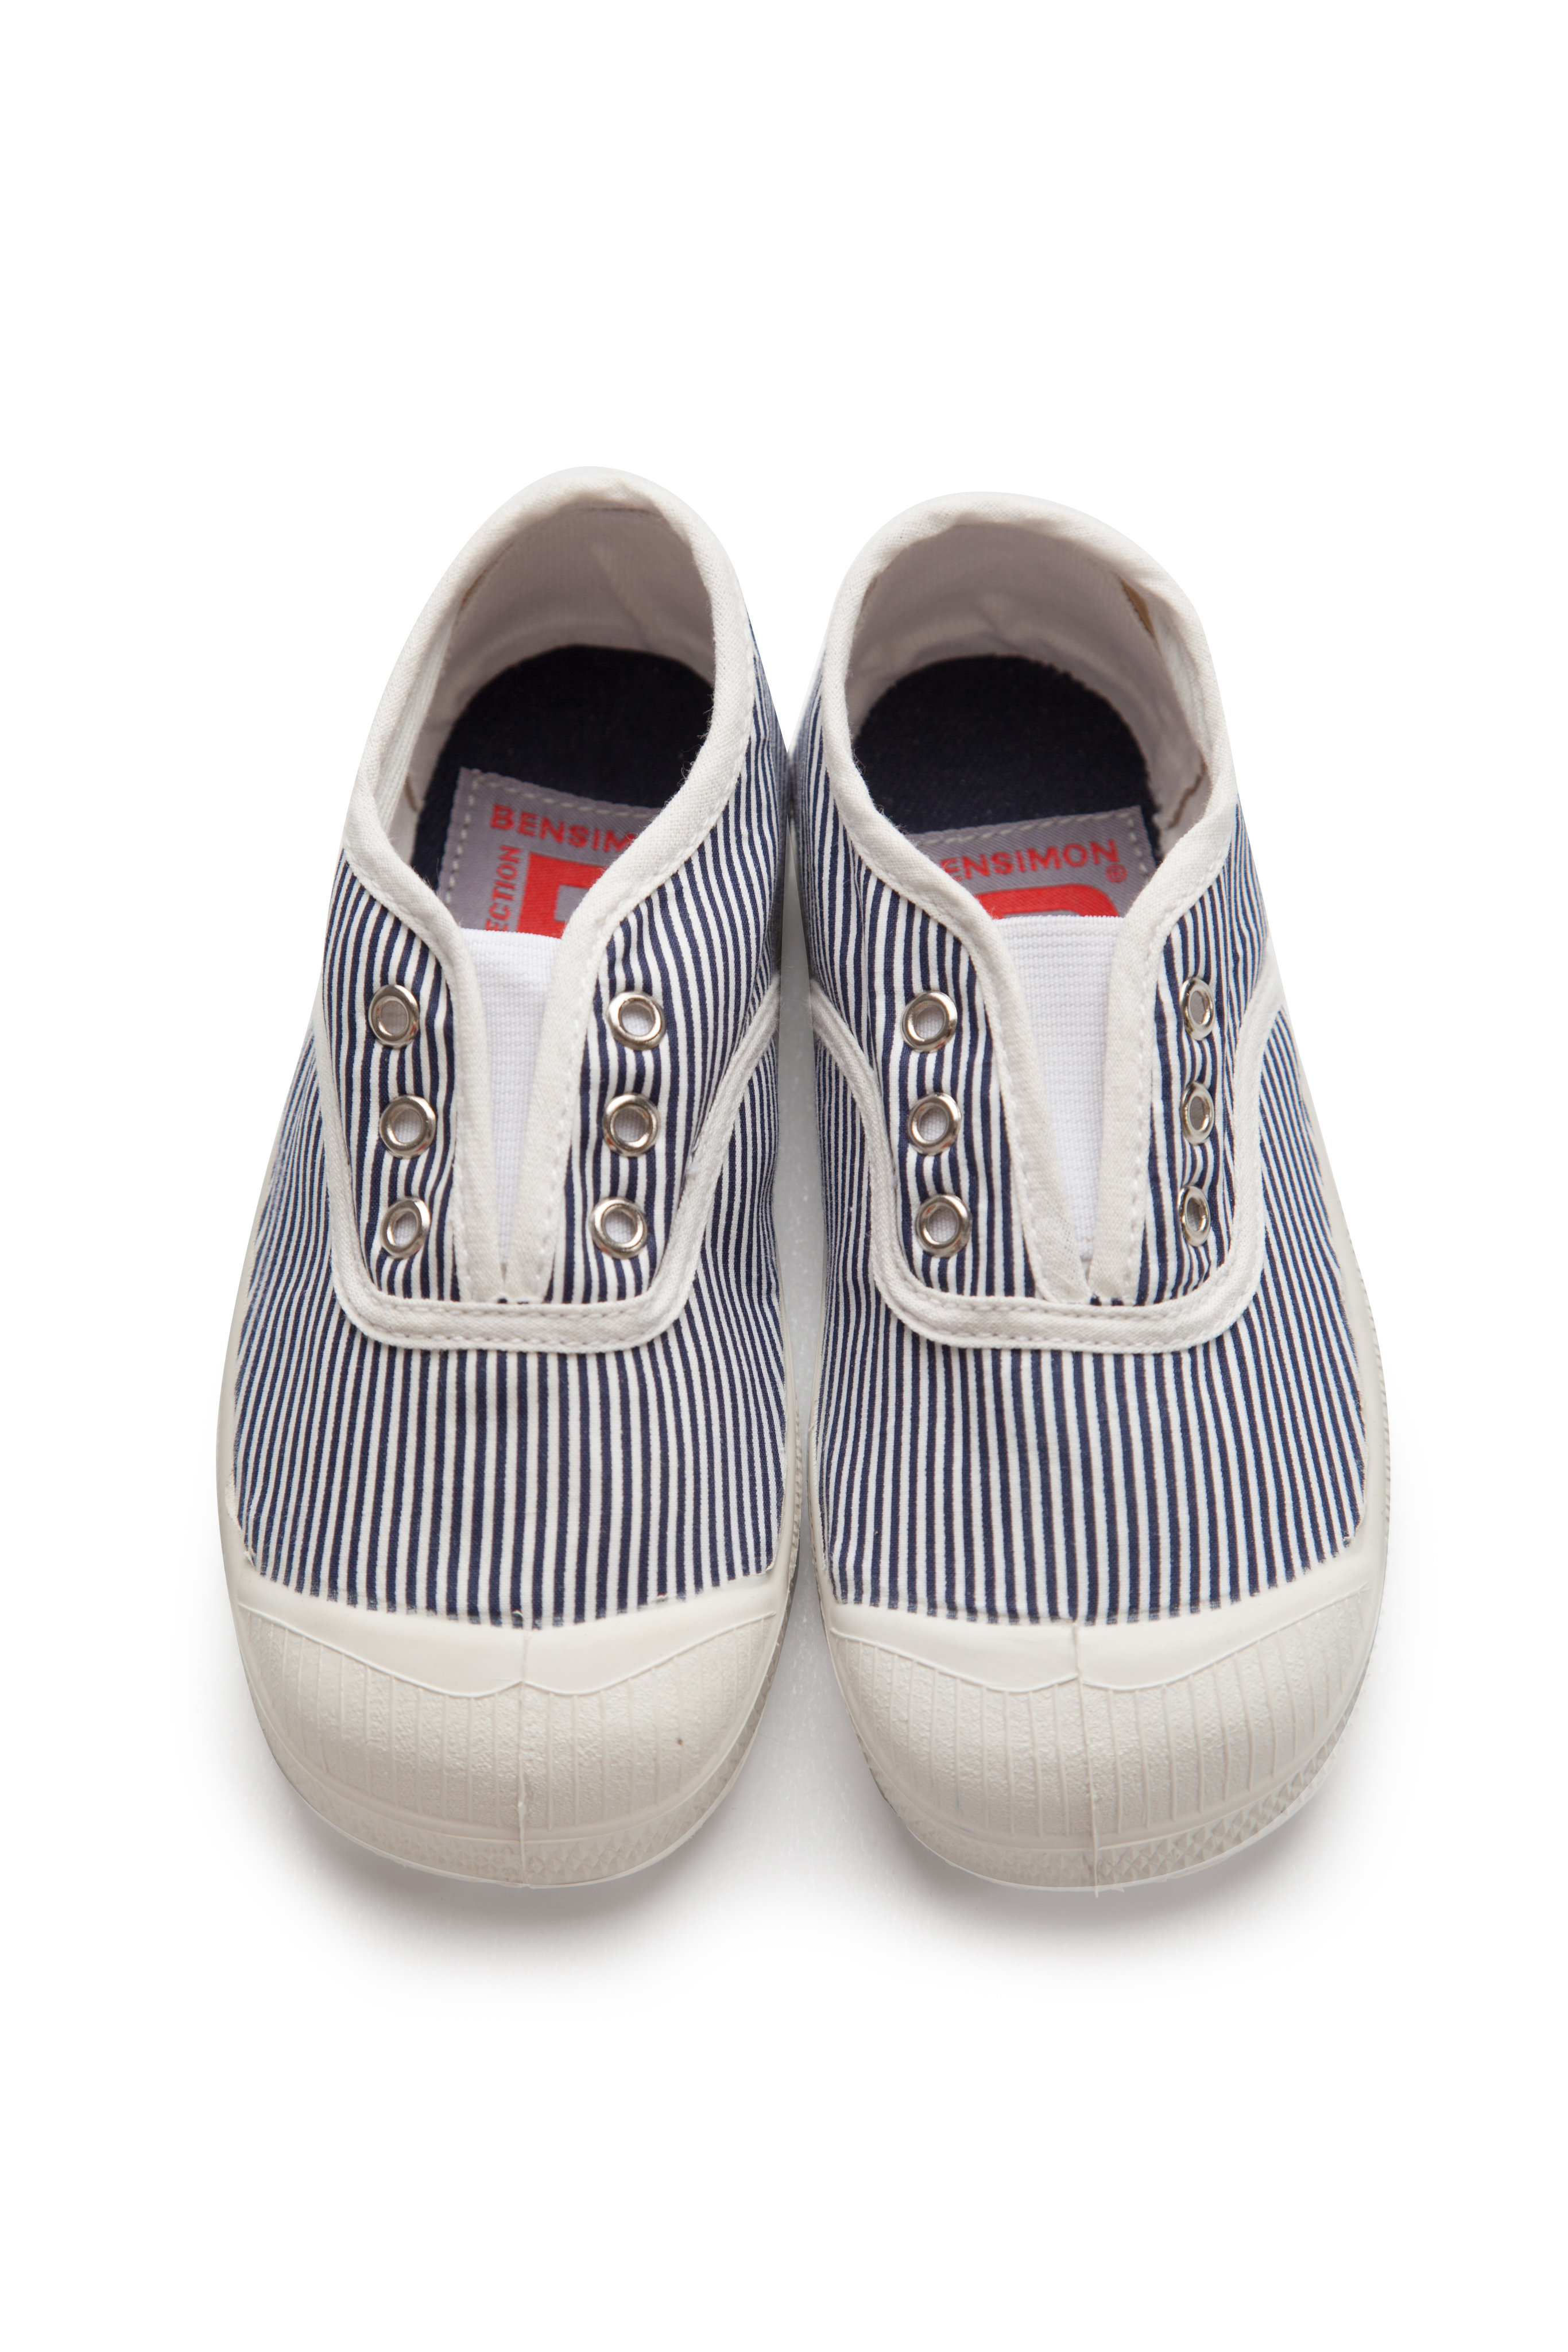 6126f65b534c10 Bensimon Kids Elly Tennis Pinstripes Navy - Littlecosmo